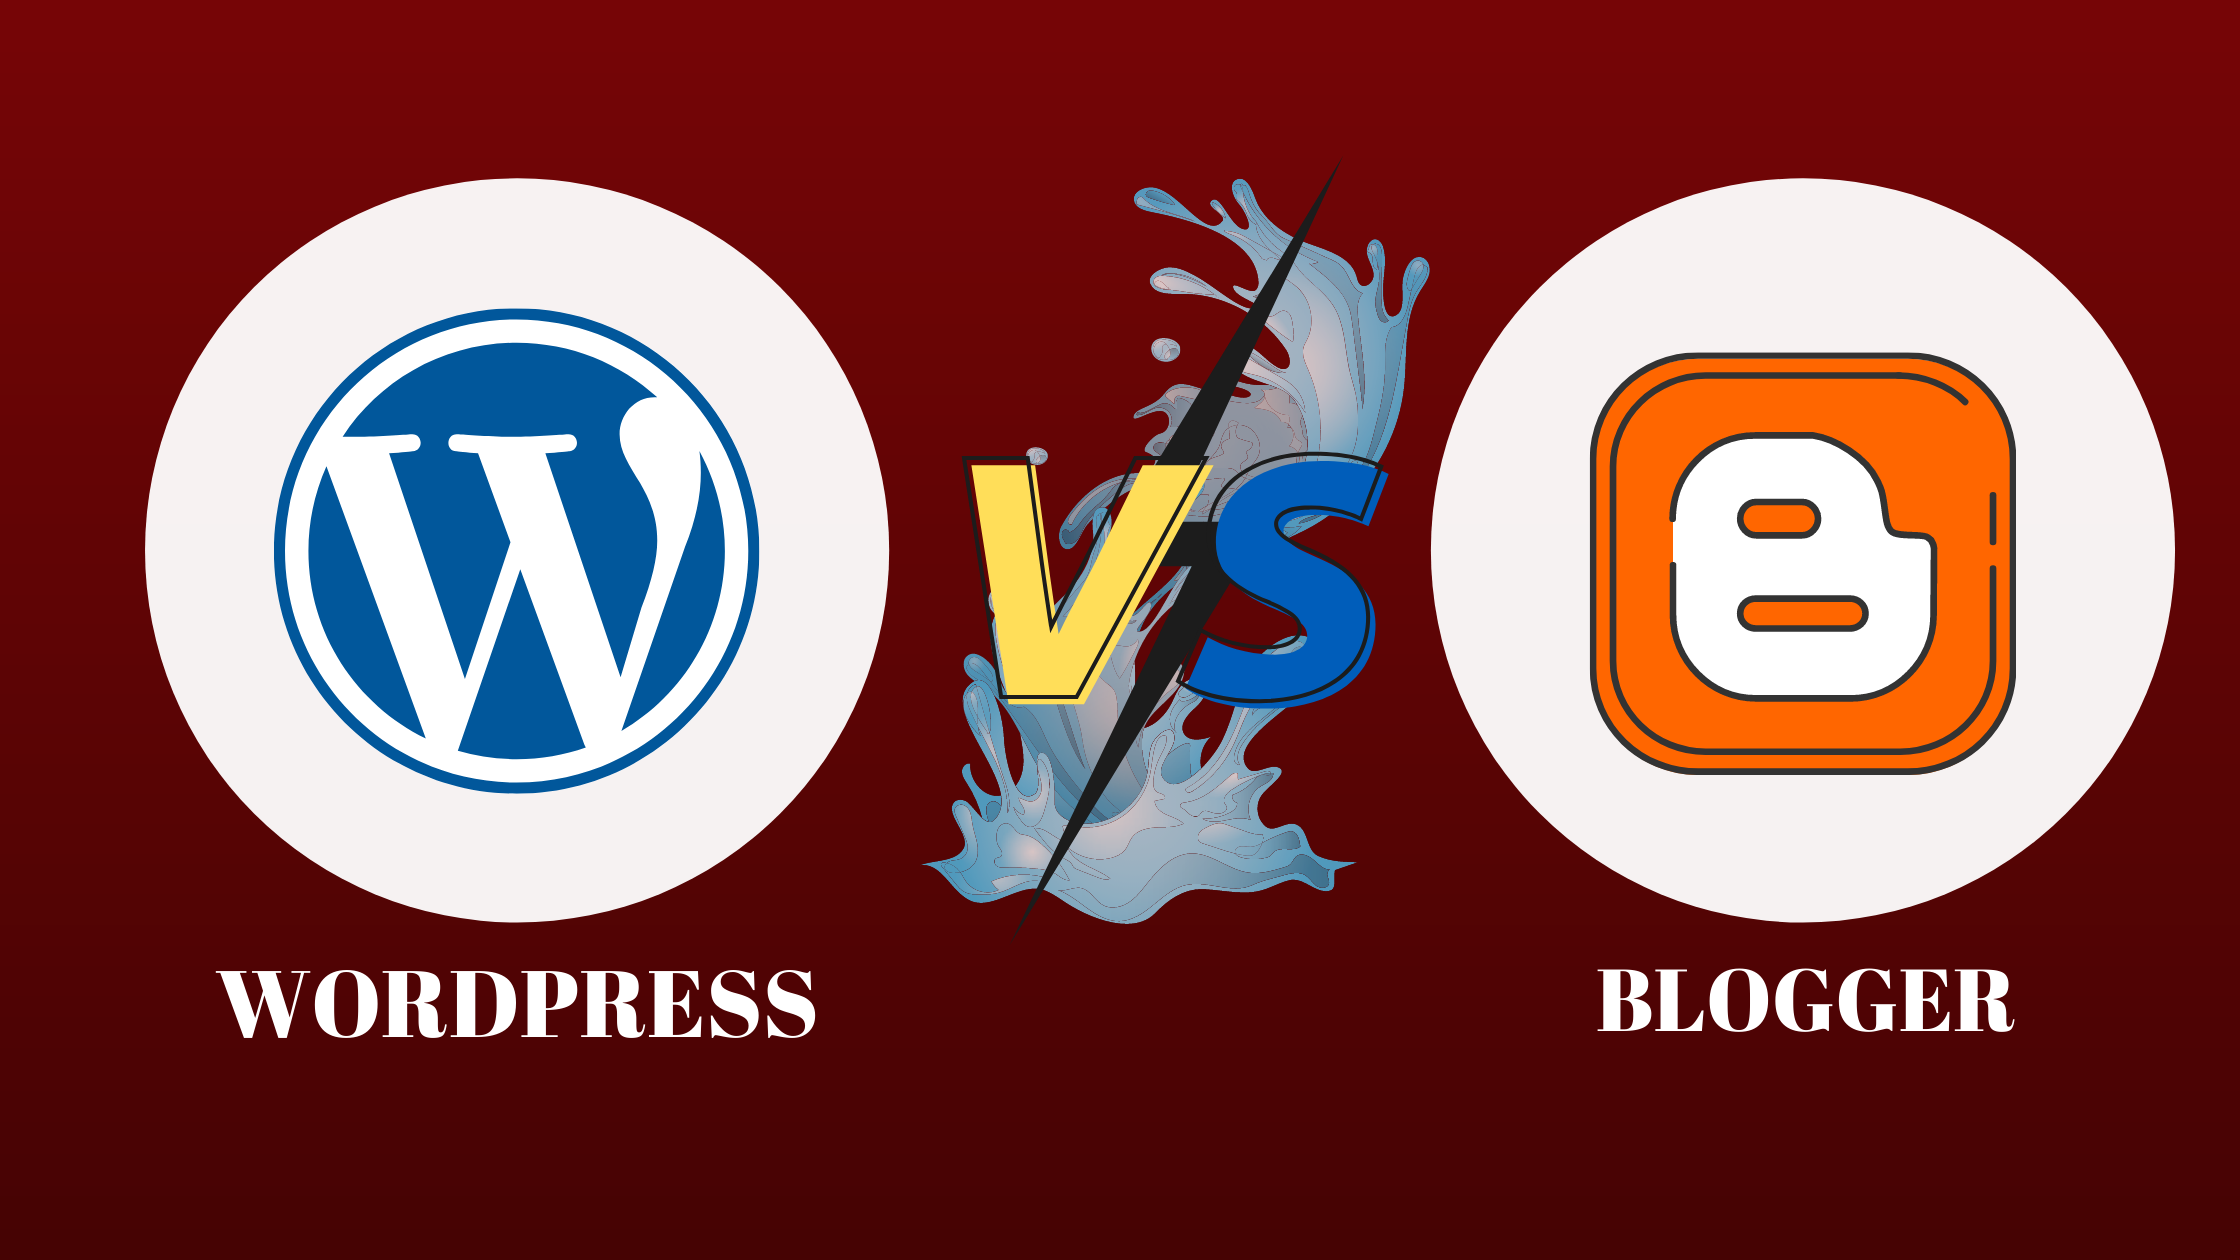 Wordpress vs Blogger which is best